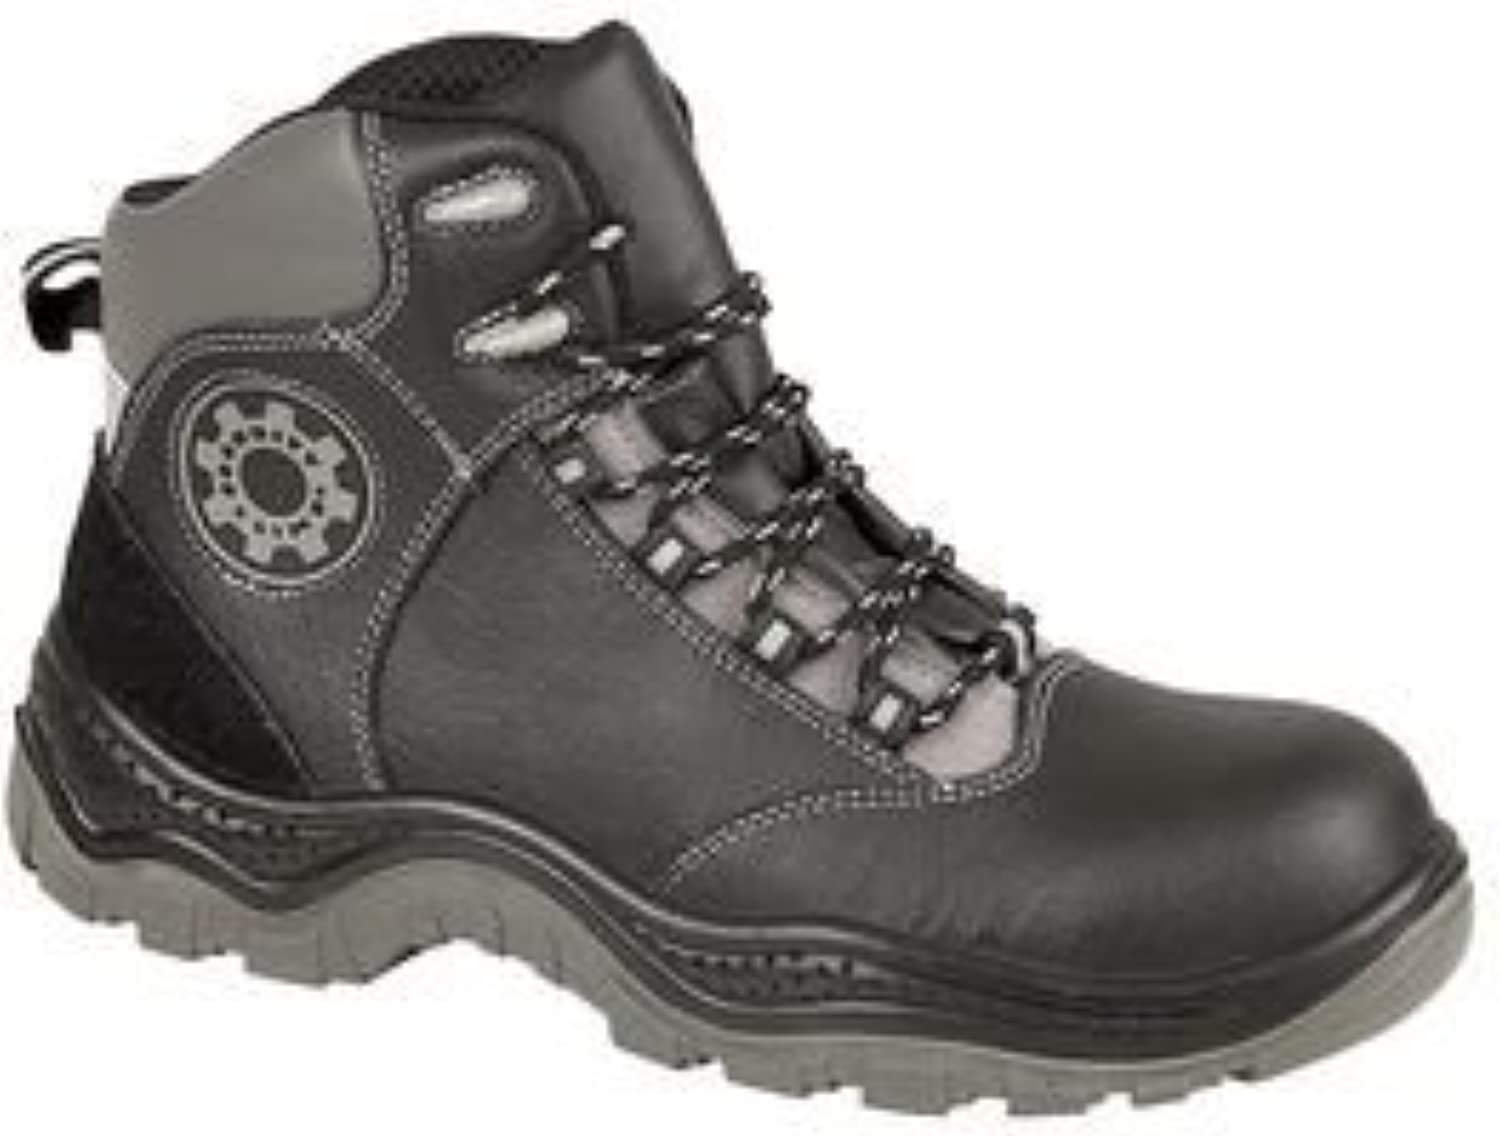 SAFETY BOOT, COMPOSITE METAL FREE, 12 BPSCA 4116-12 - HE33976 By SECURITY LINE